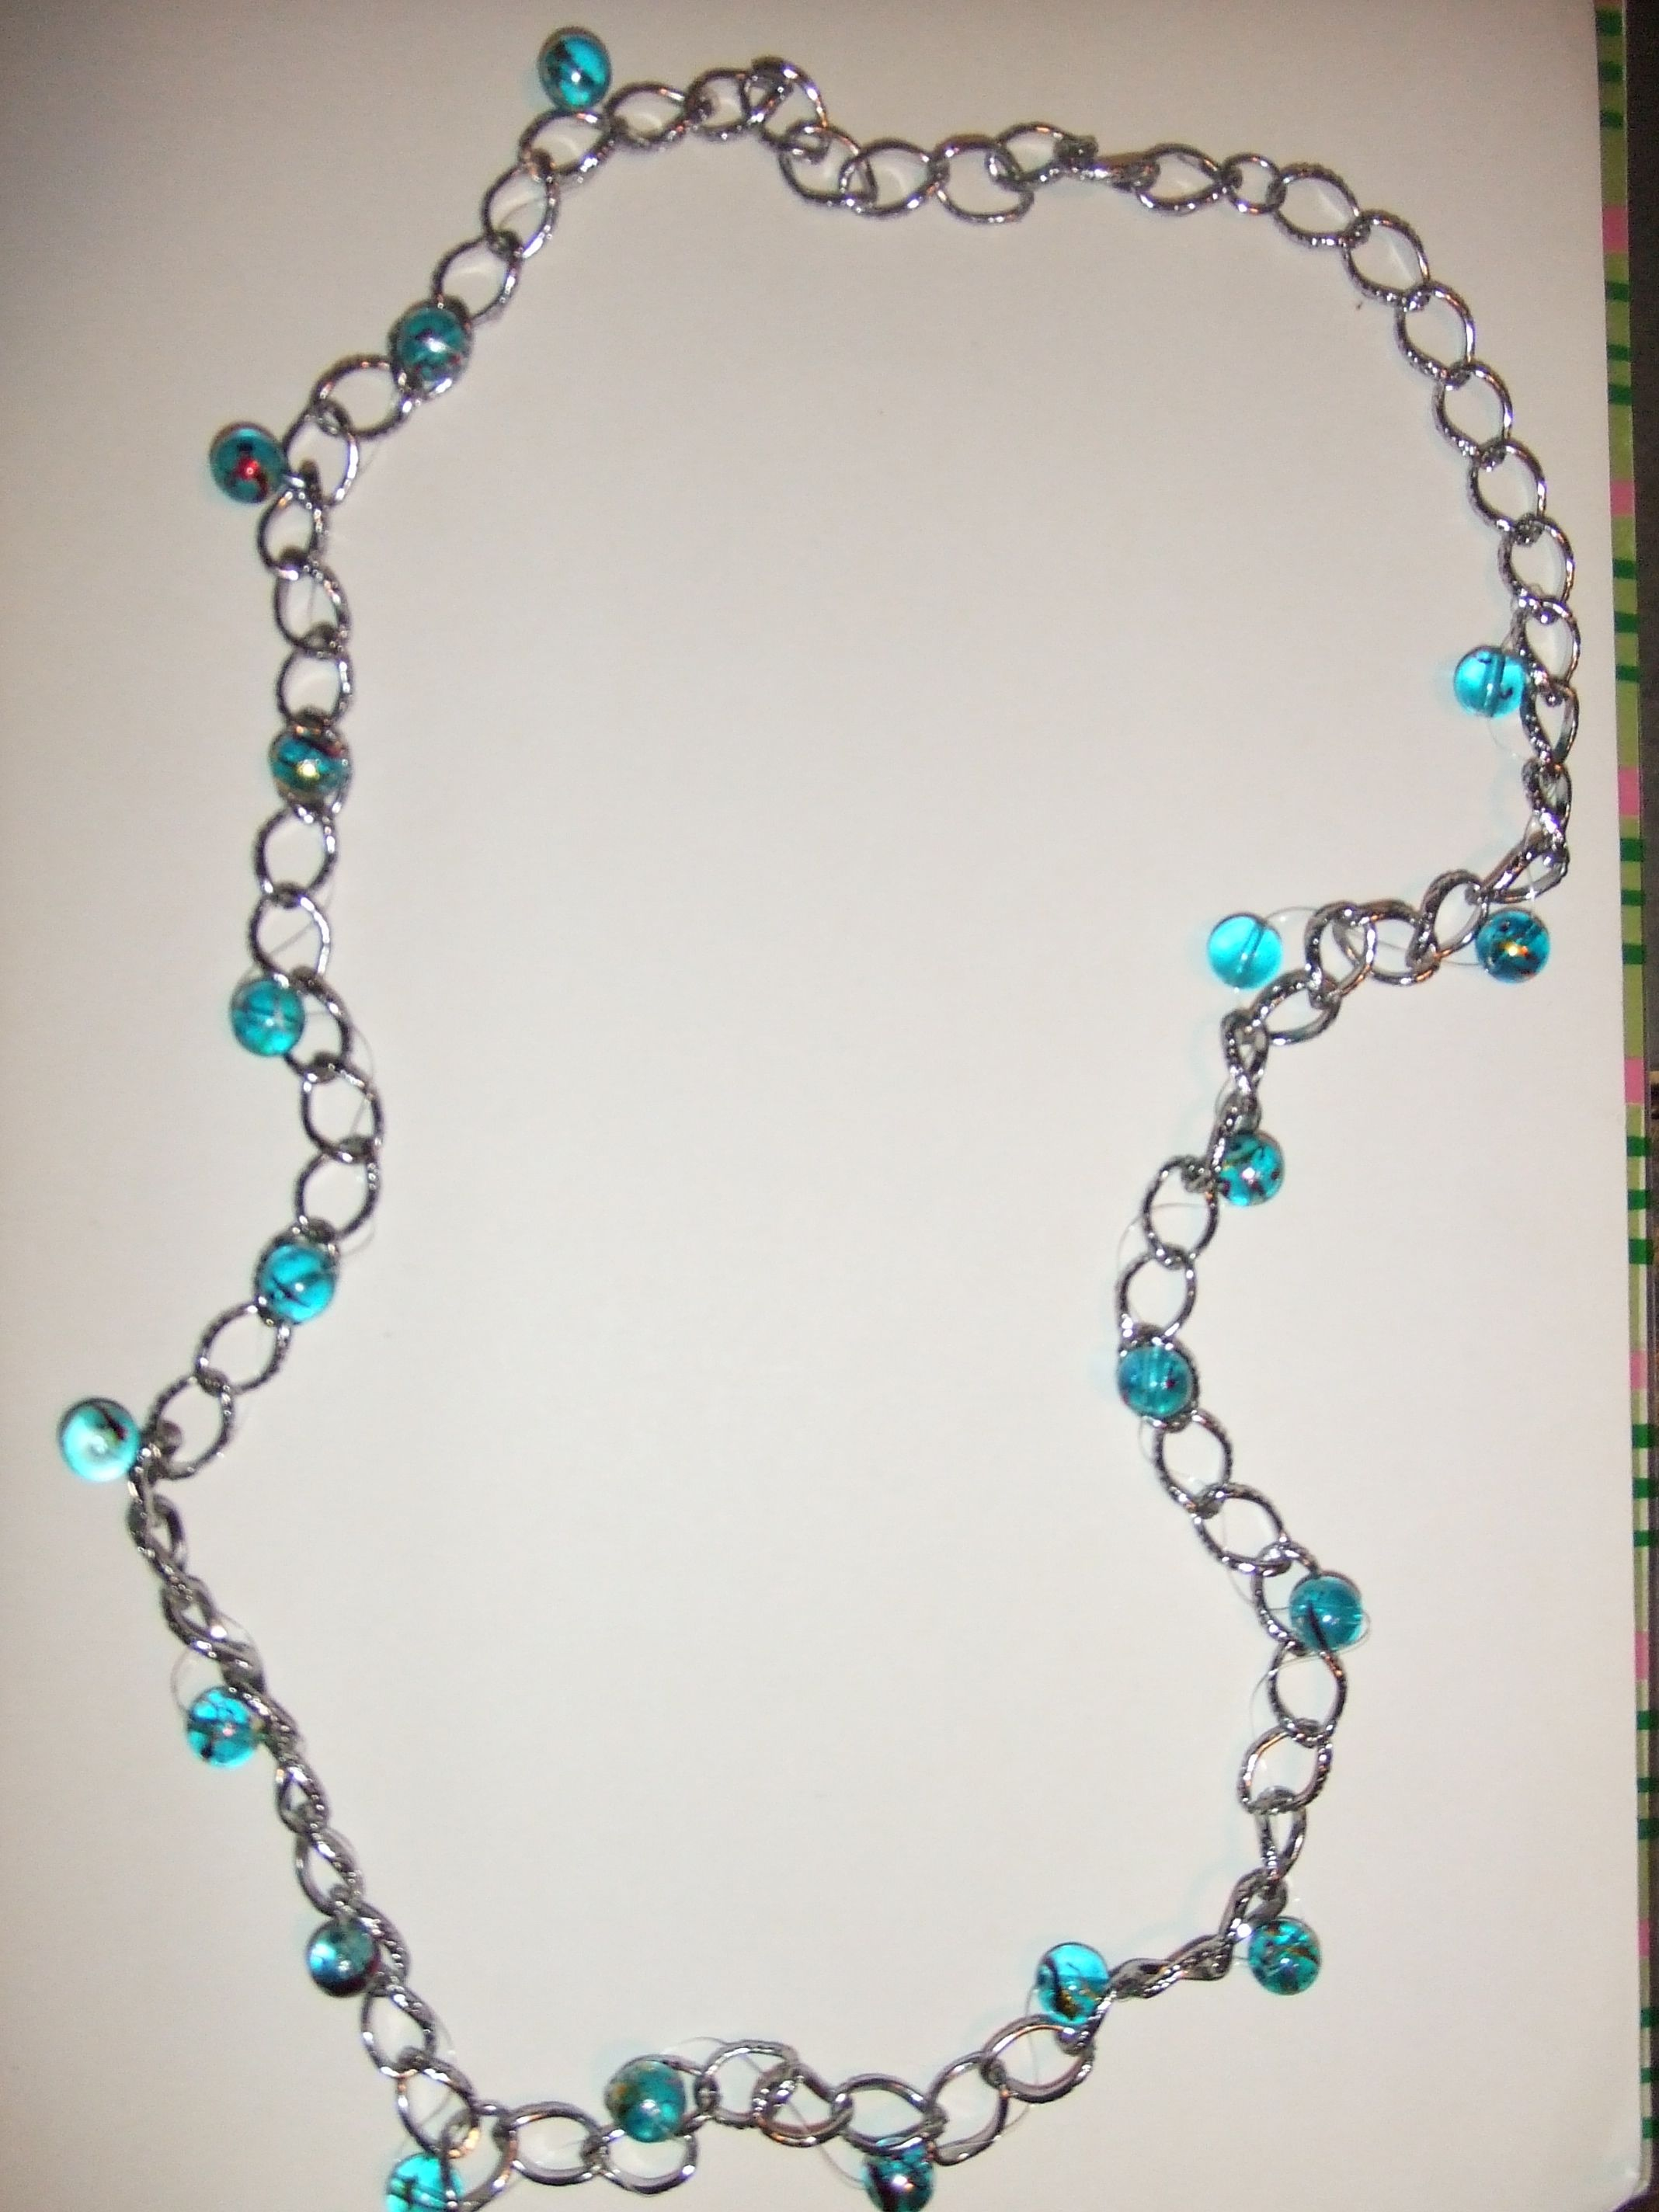 its statement jewelry own necklace diy absolutely craft tutorial your ideas make to